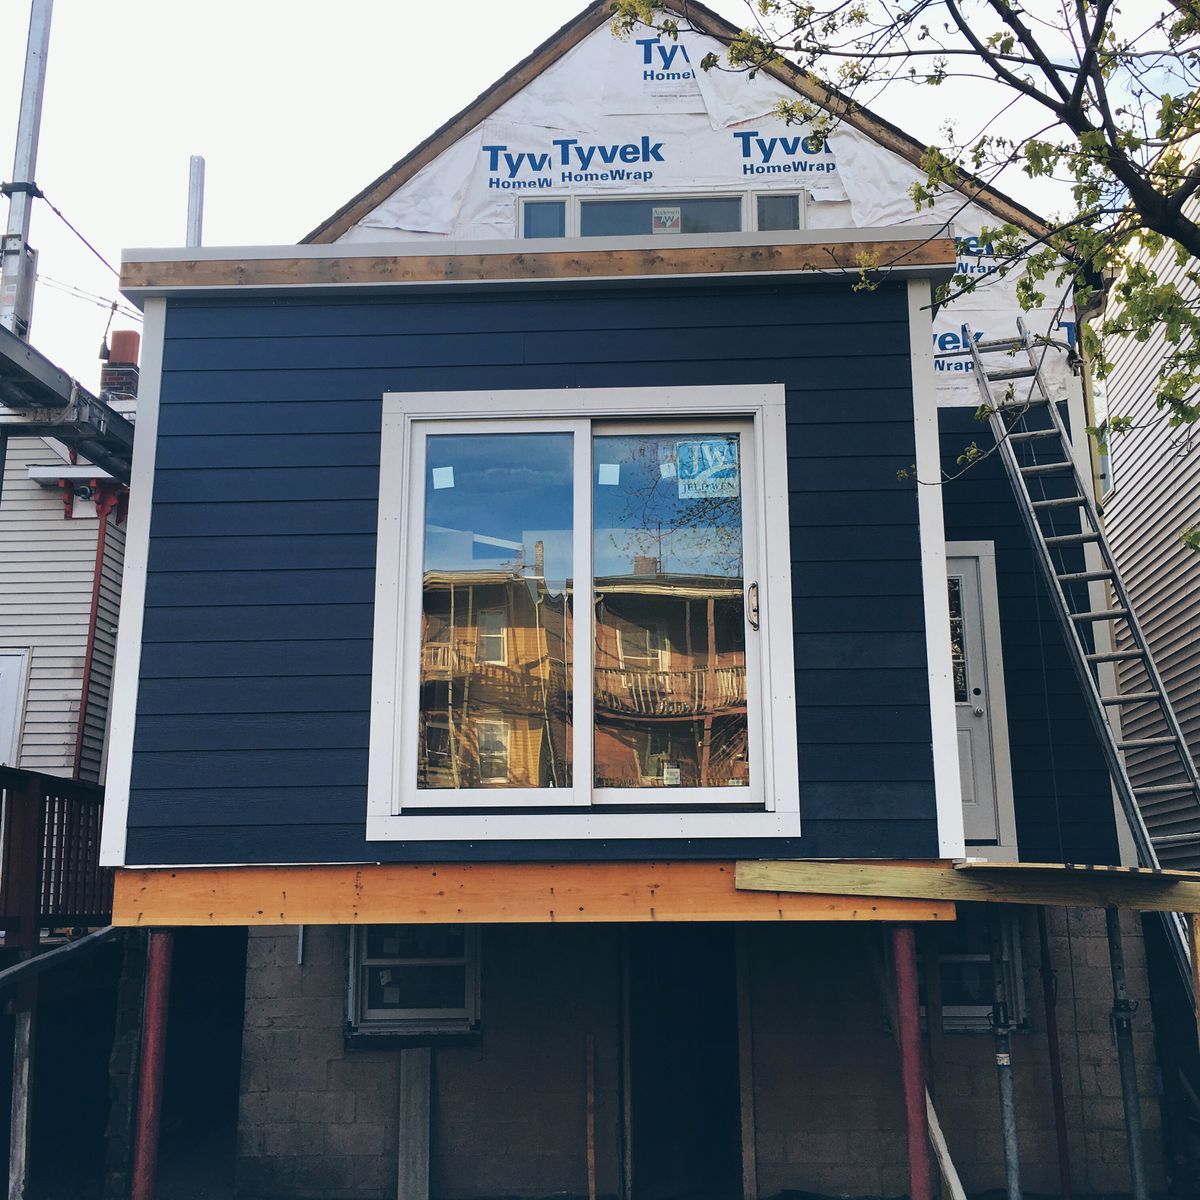 Working-class cottage renovation in Eastie